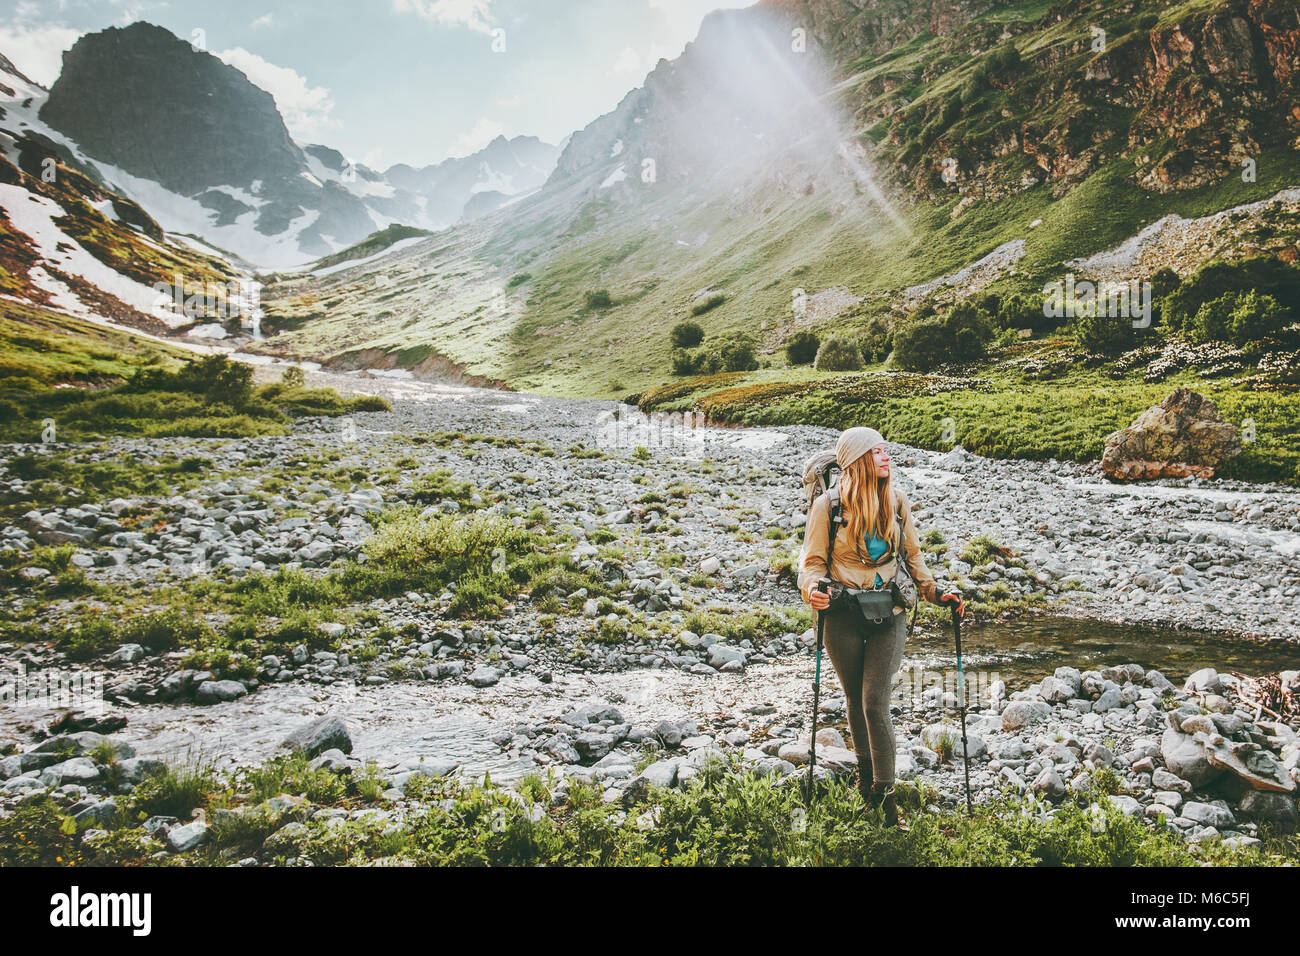 Woman backpacker hiking in mountains adventure travel lifestyle concept active summer vacations sport outdoor - Stock Image